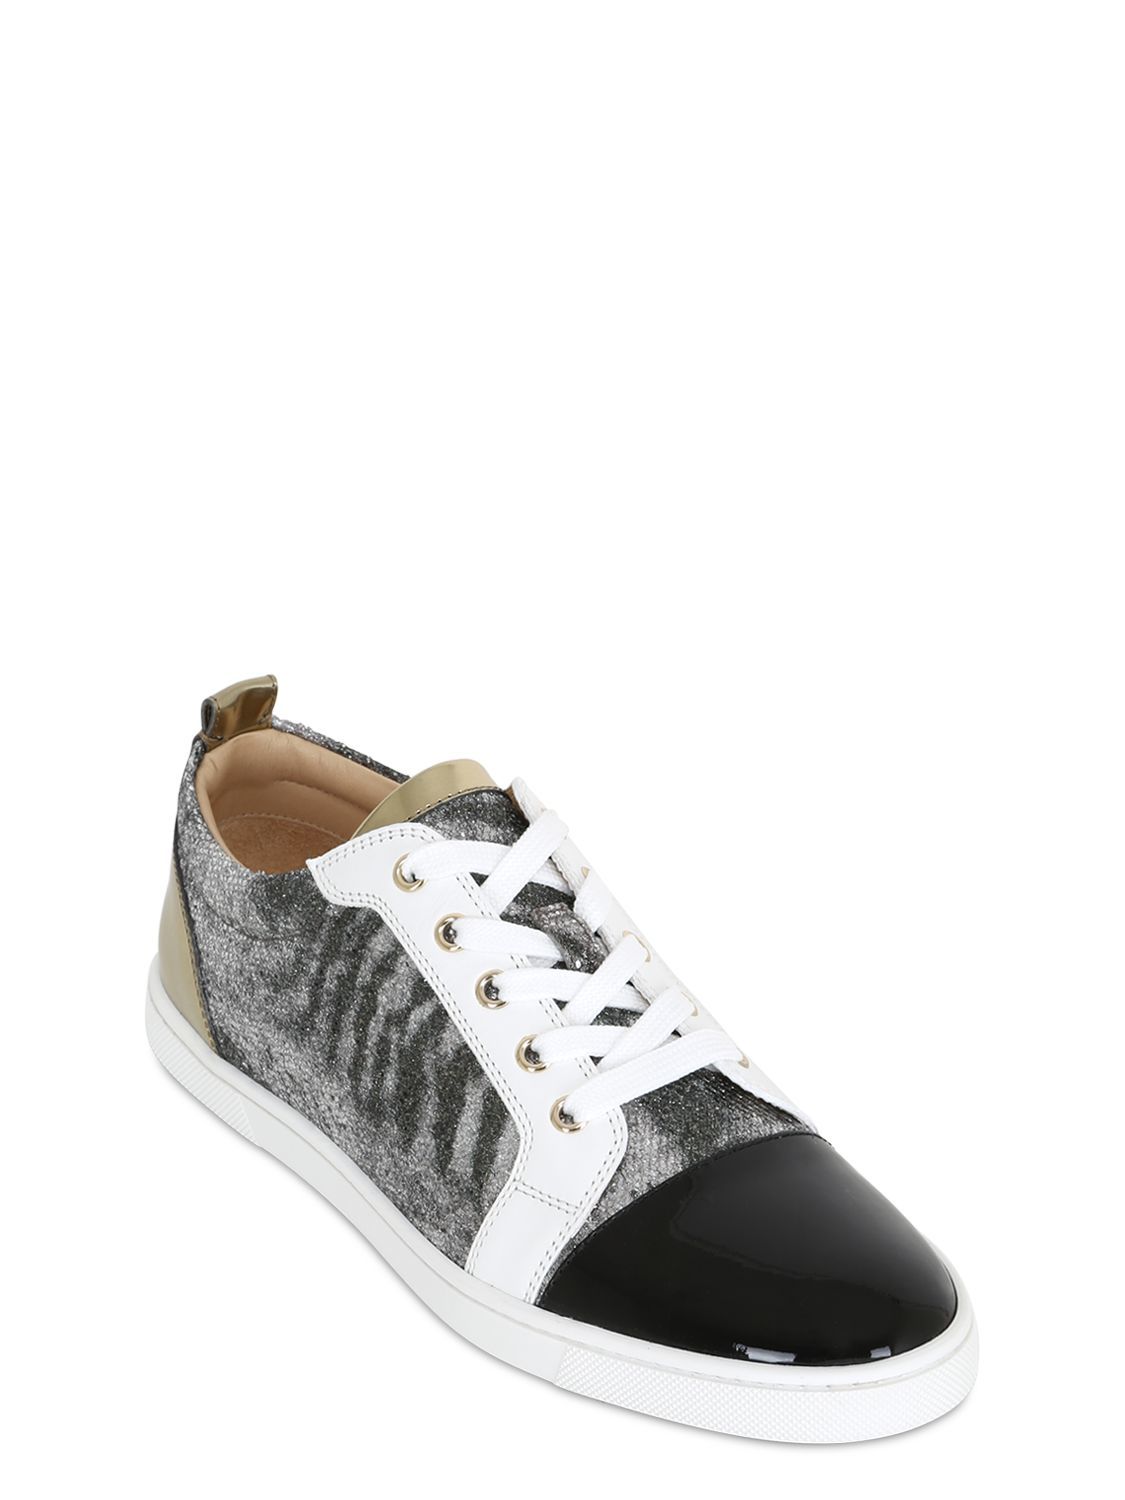 fake louis vuitton shoes - Christian louboutin Gondoliere Patent & Glitter Sneakers in Black ...